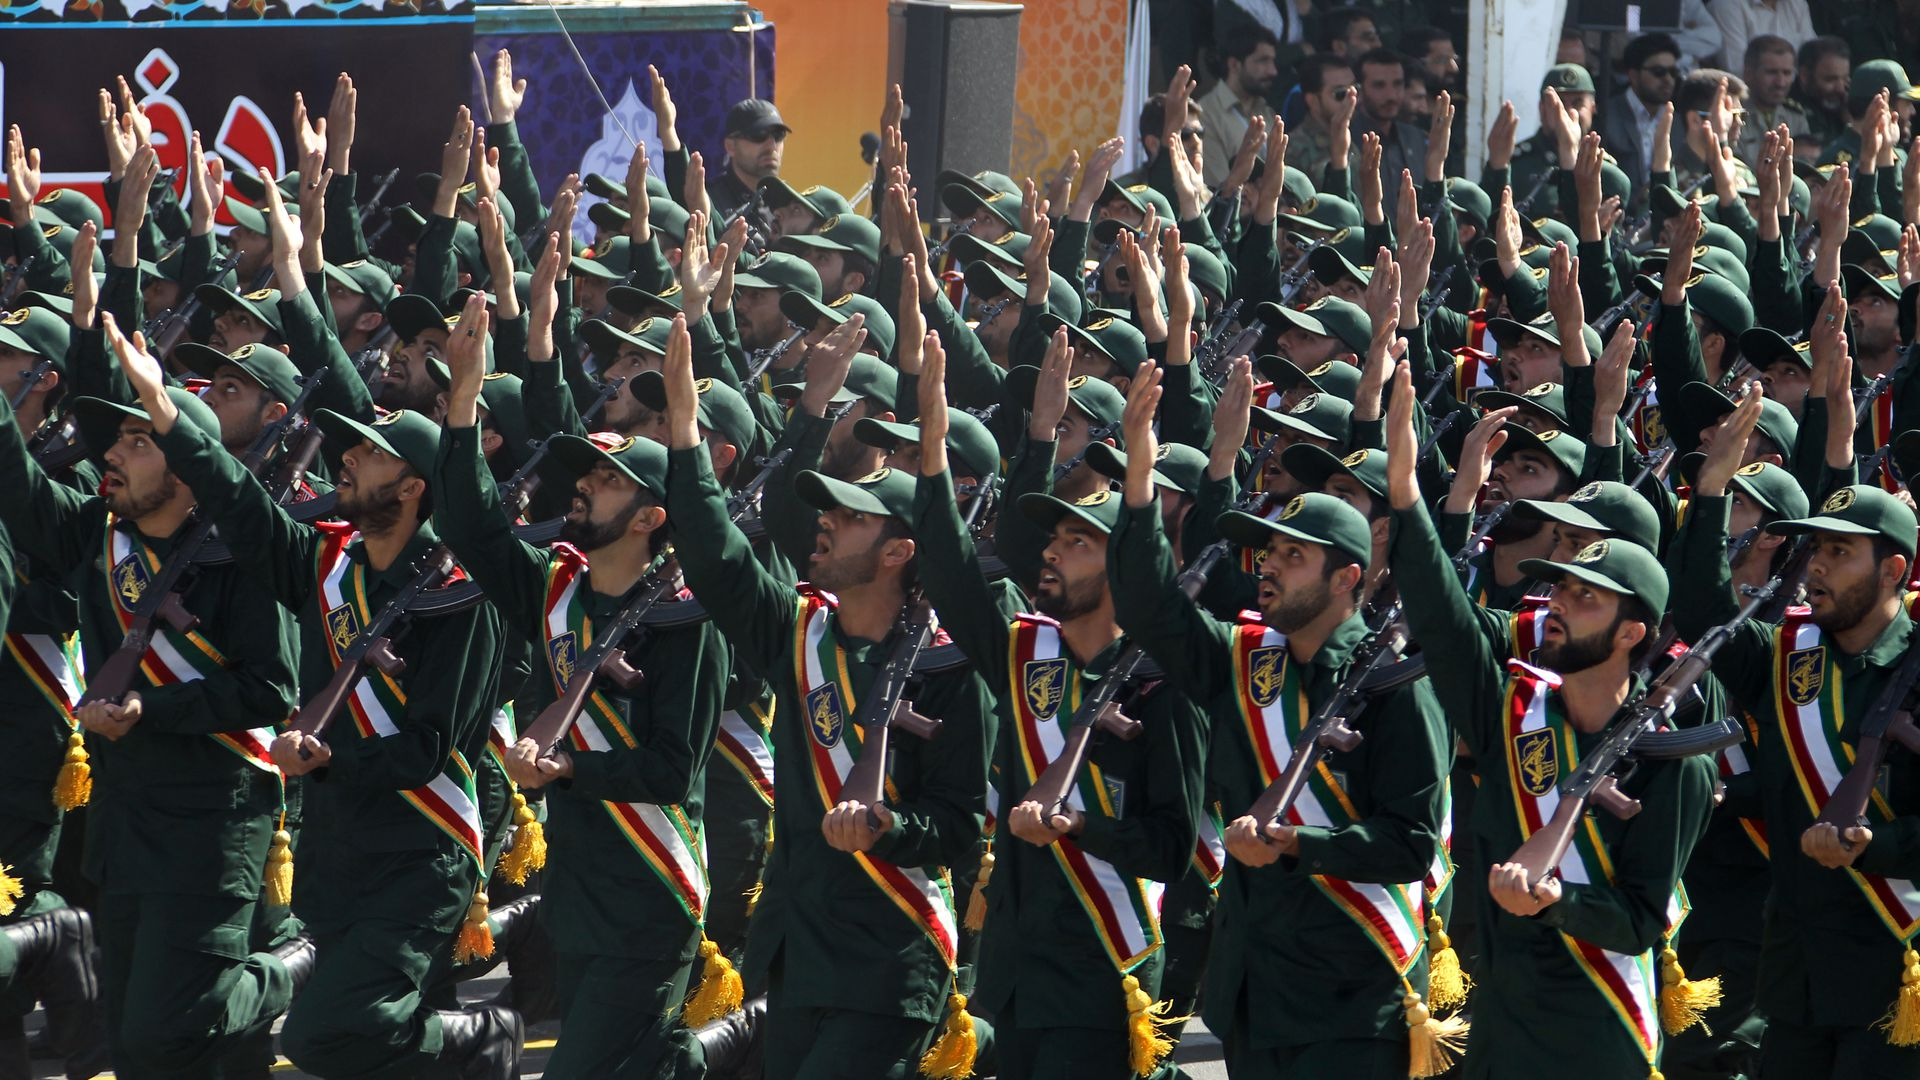 Members of the elite Revolutionary Guards